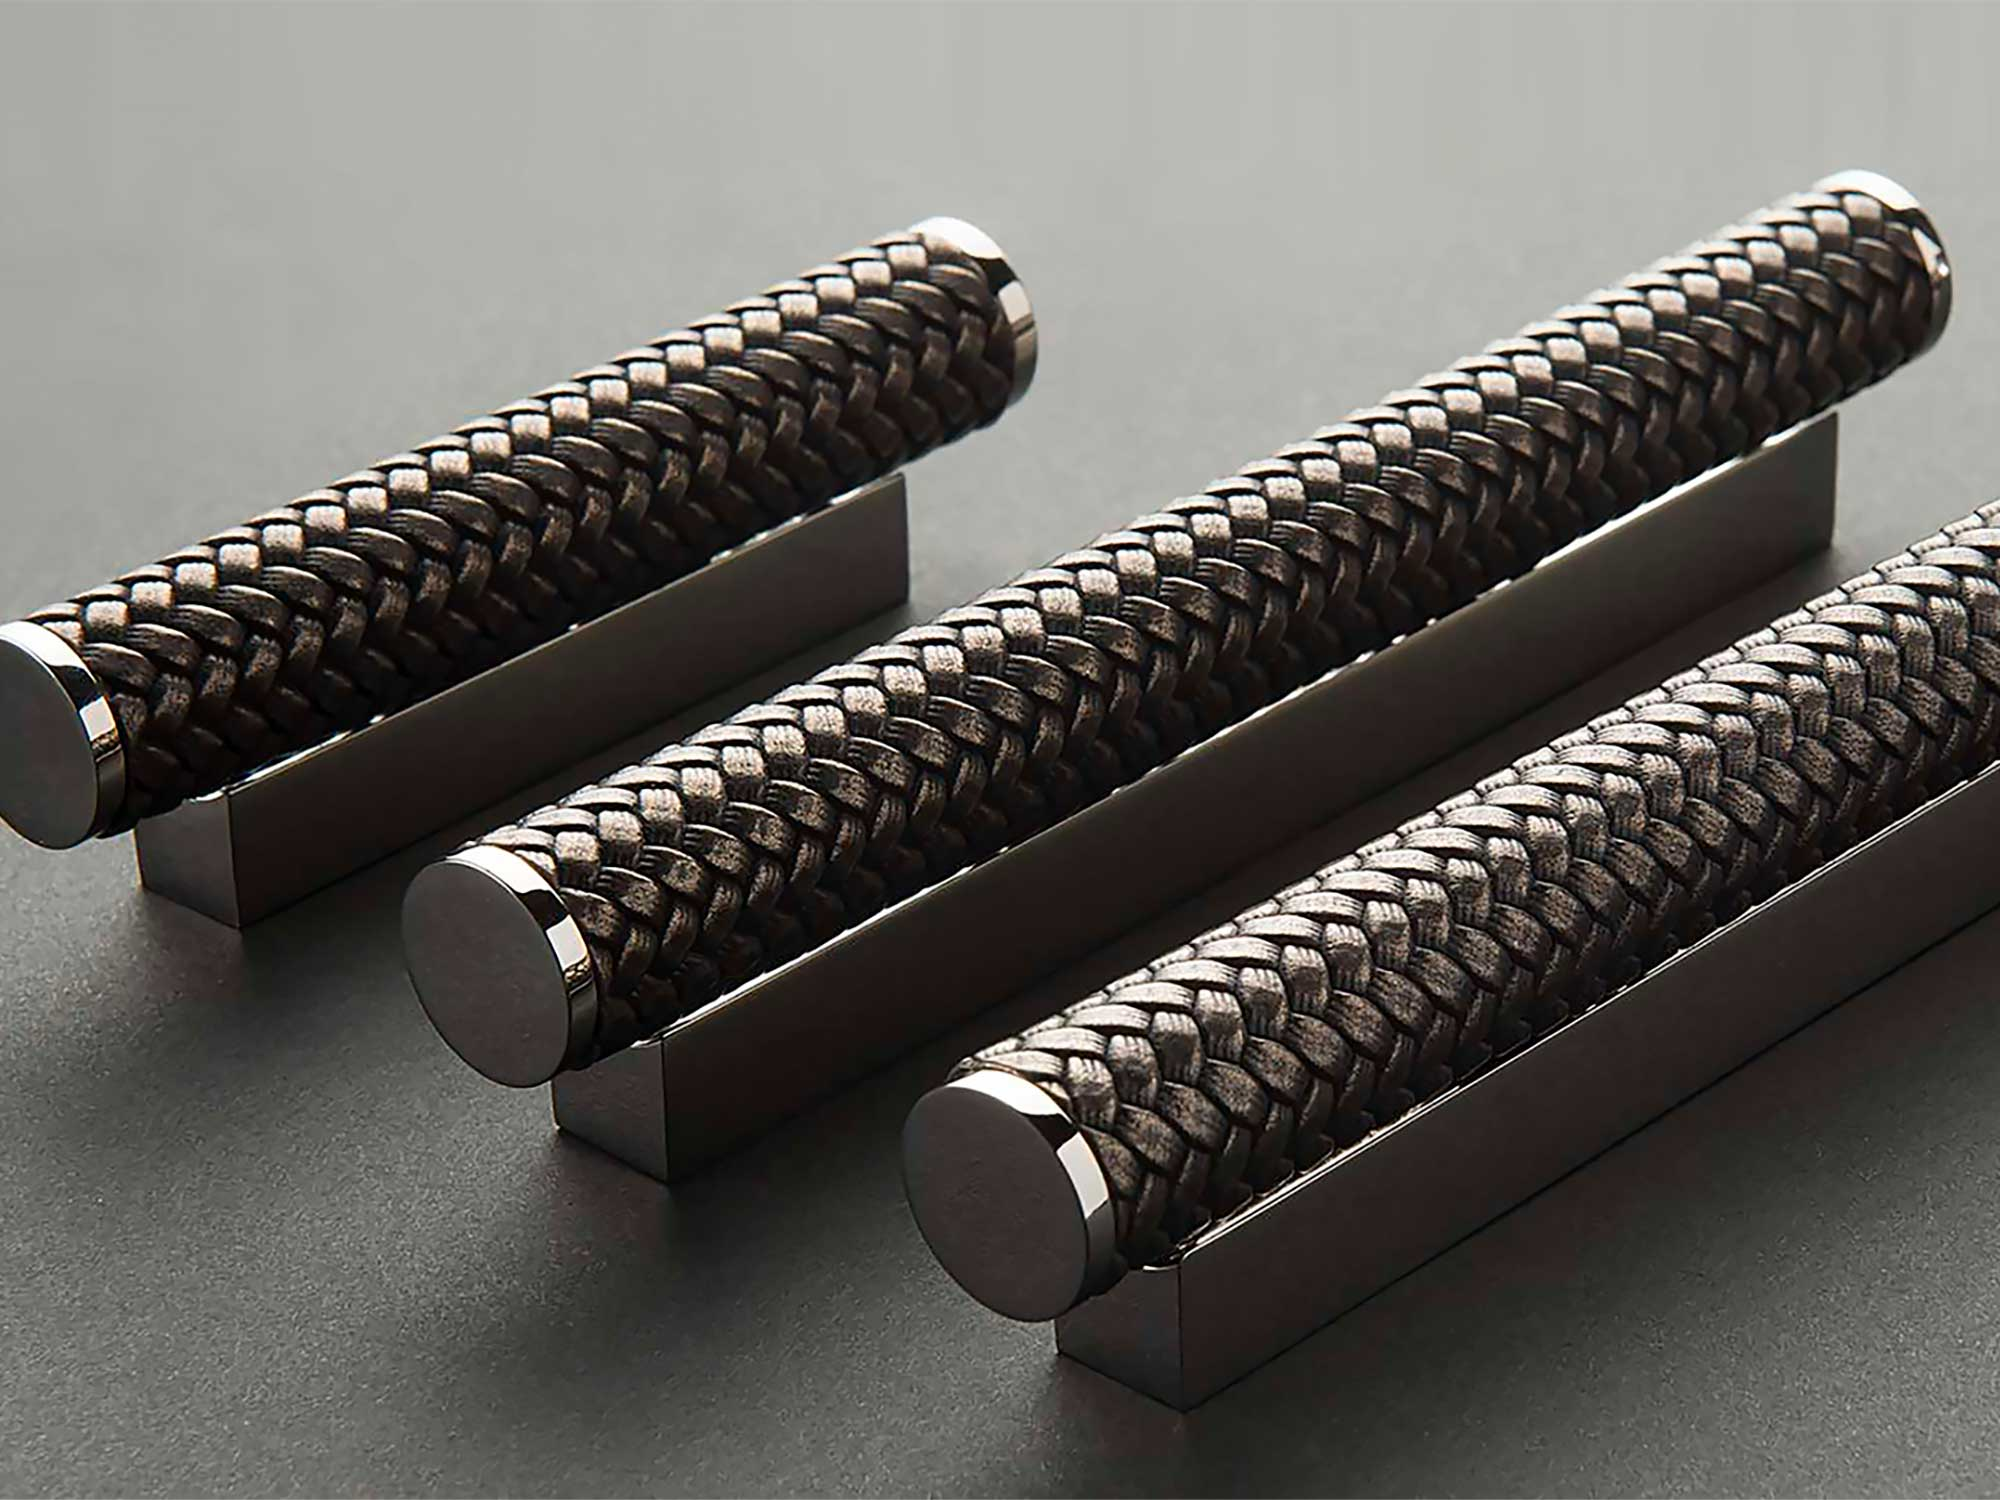 Turnstyle kitchen handles by Hubble